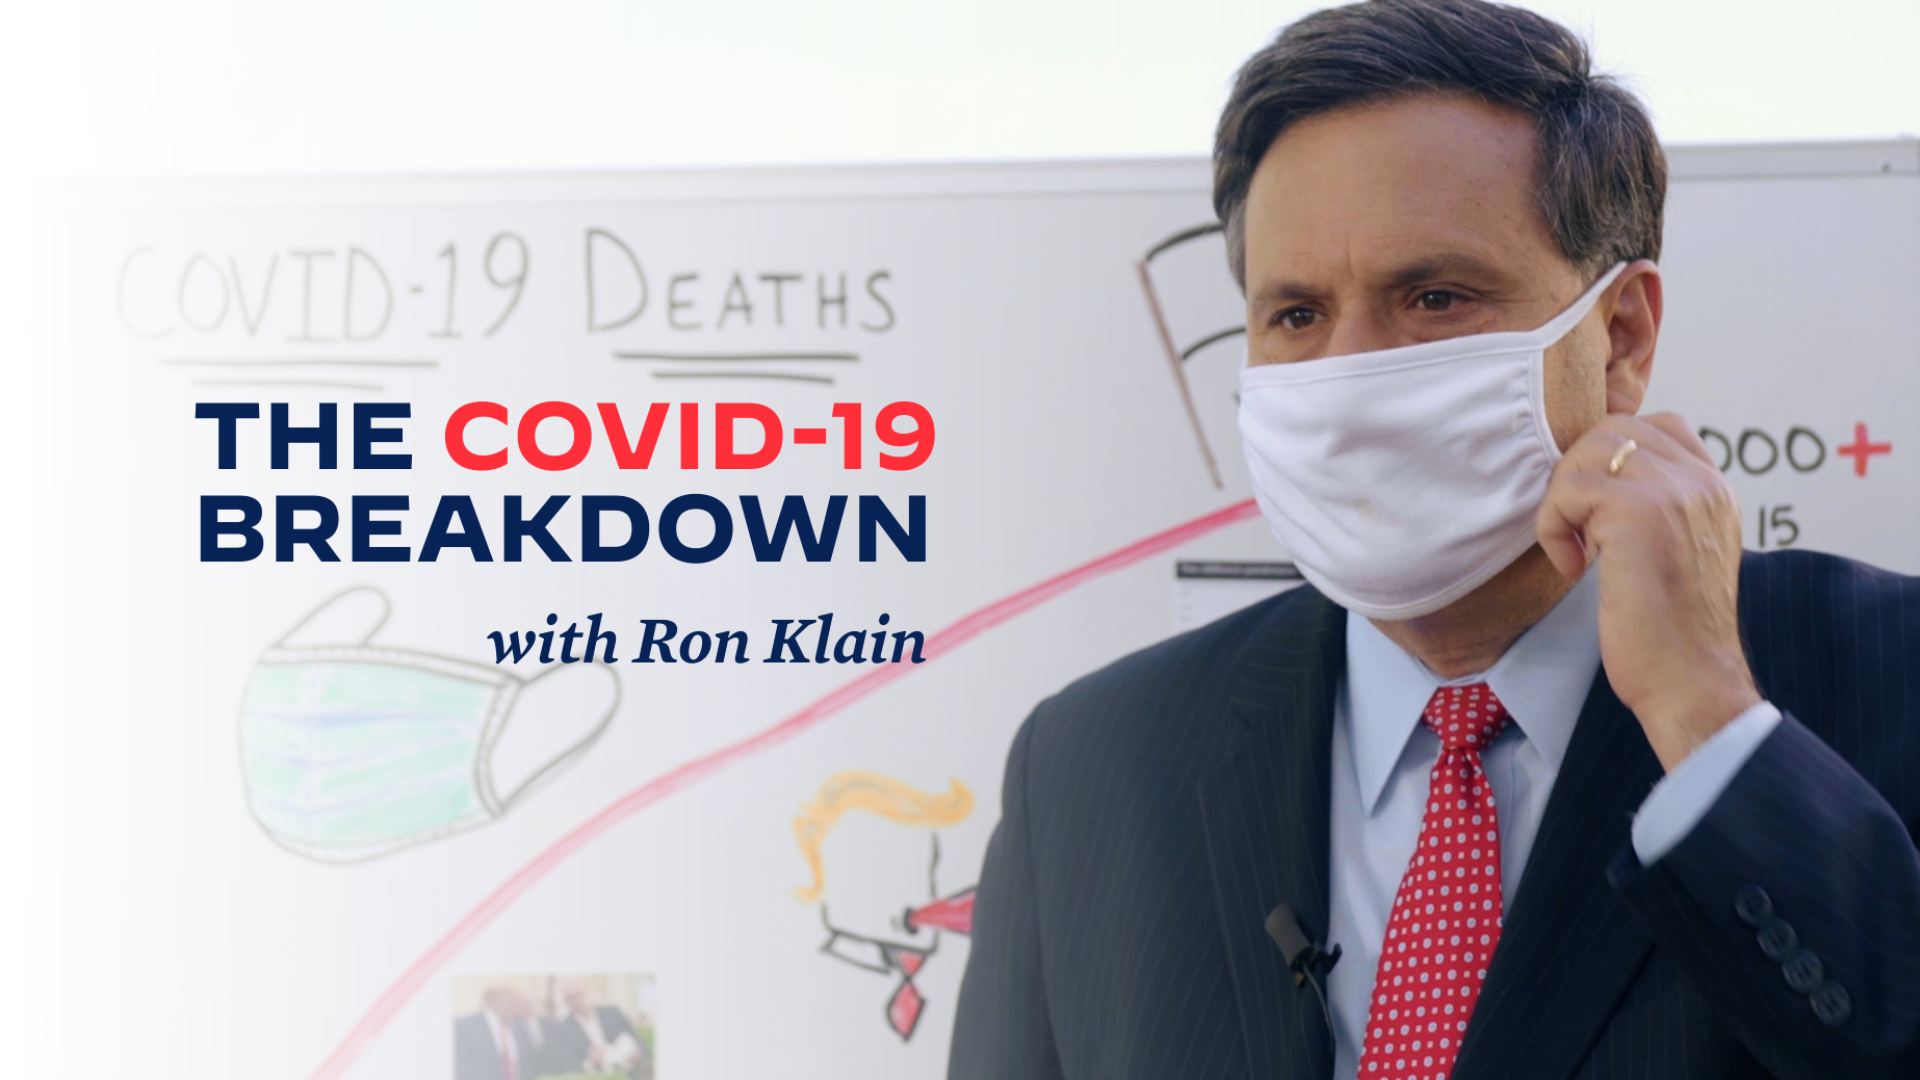 Watch a video explainer on the COVID-19 crisis with Ron Klain